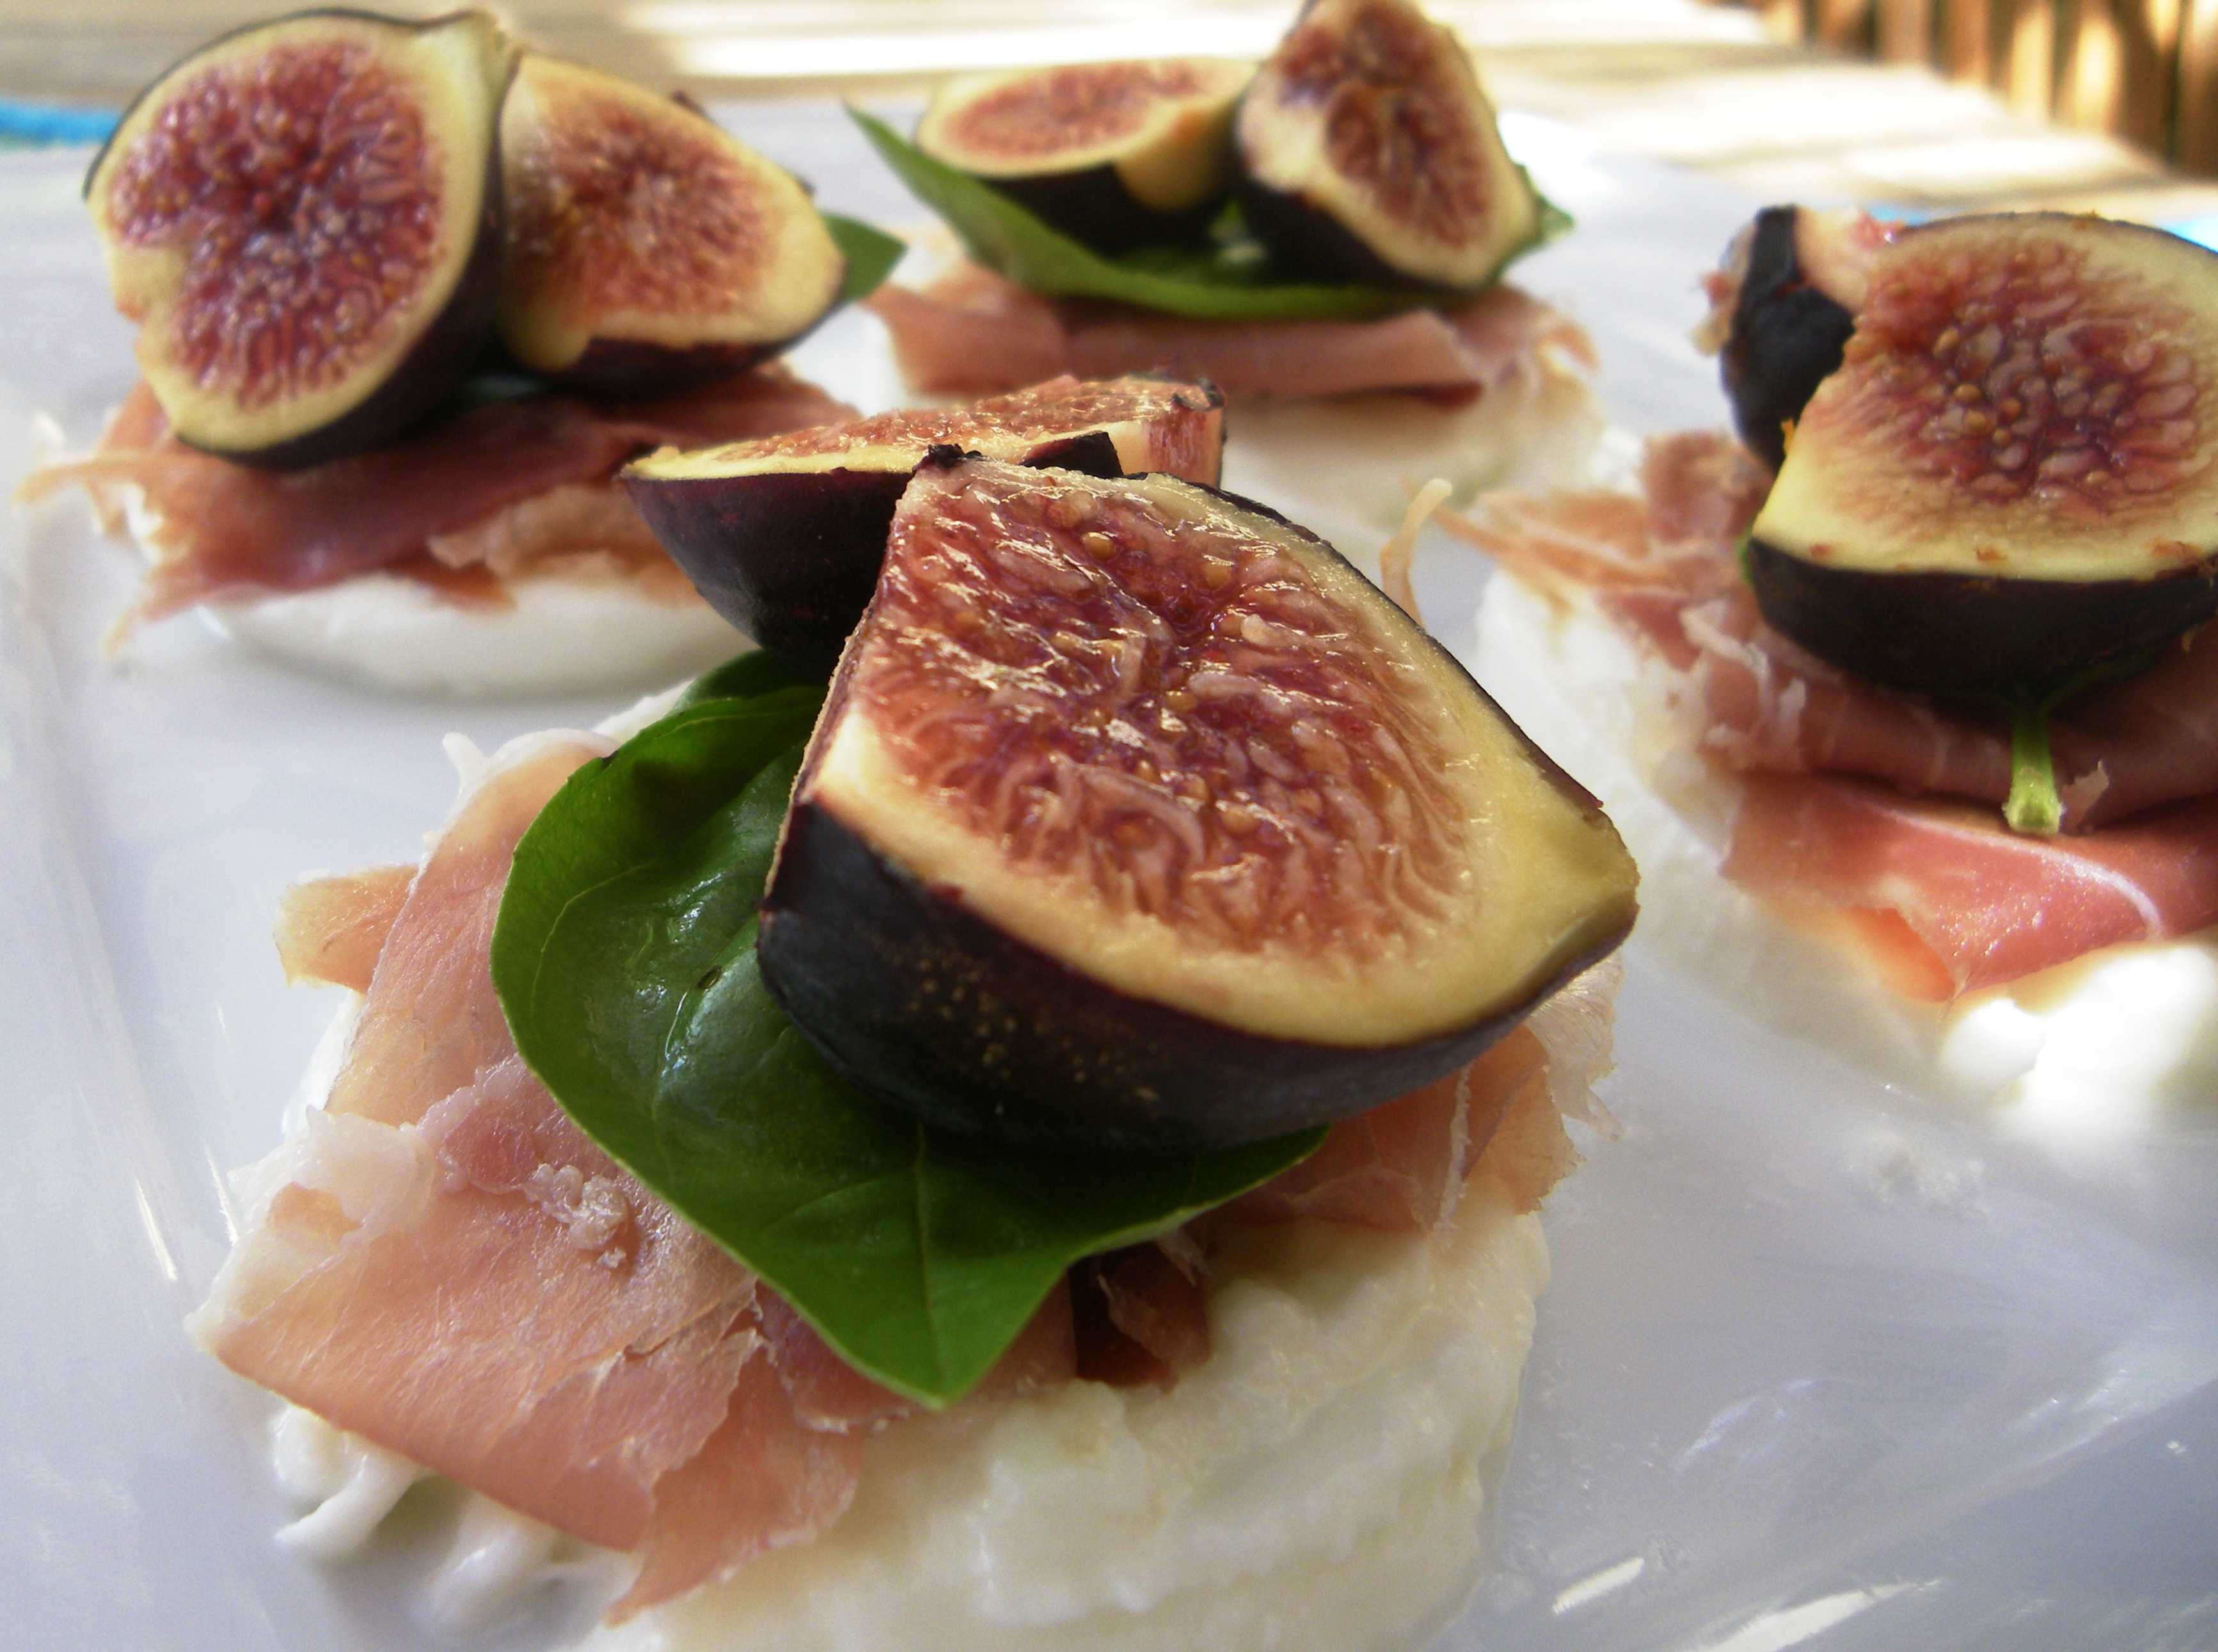 Mozzarella and figs antipasto